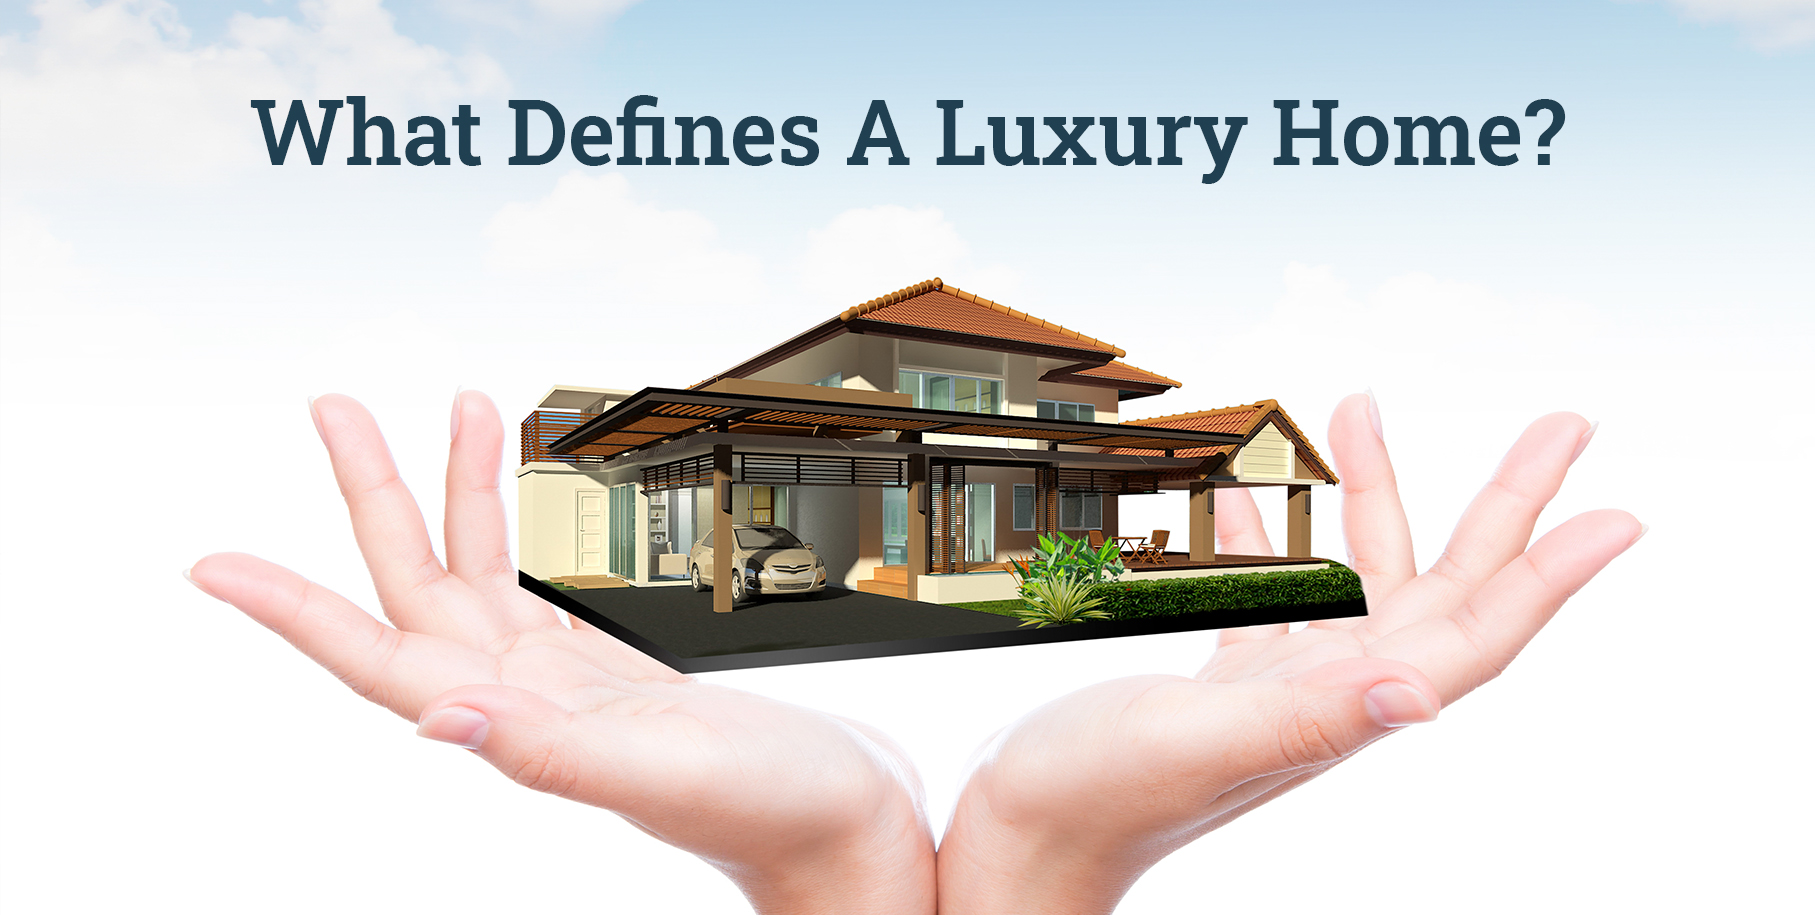 What Defines A Luxury Home?